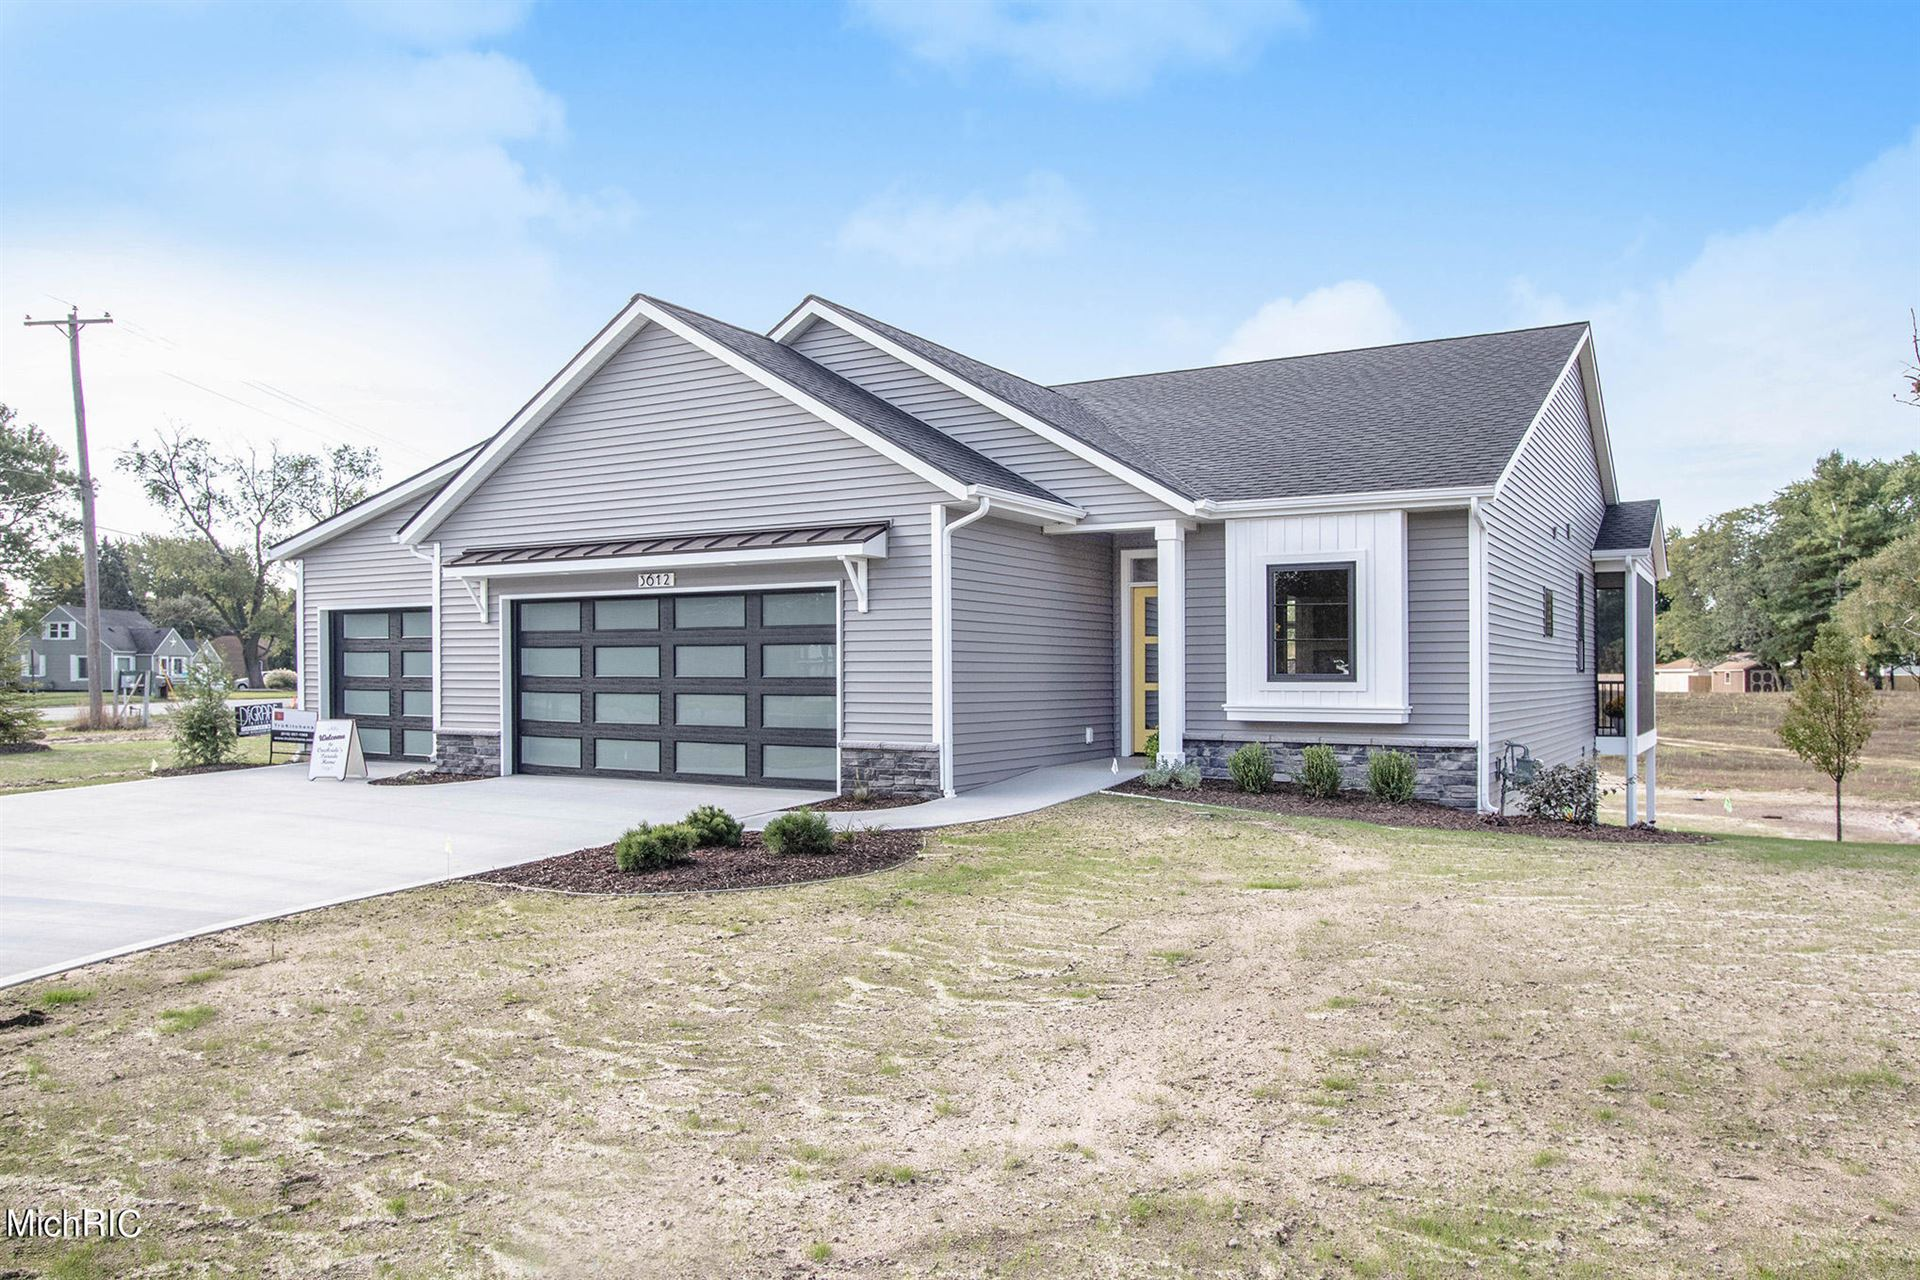 5761 36th Avenue, Hudsonville, MI 49426 - MLS#: 21005848